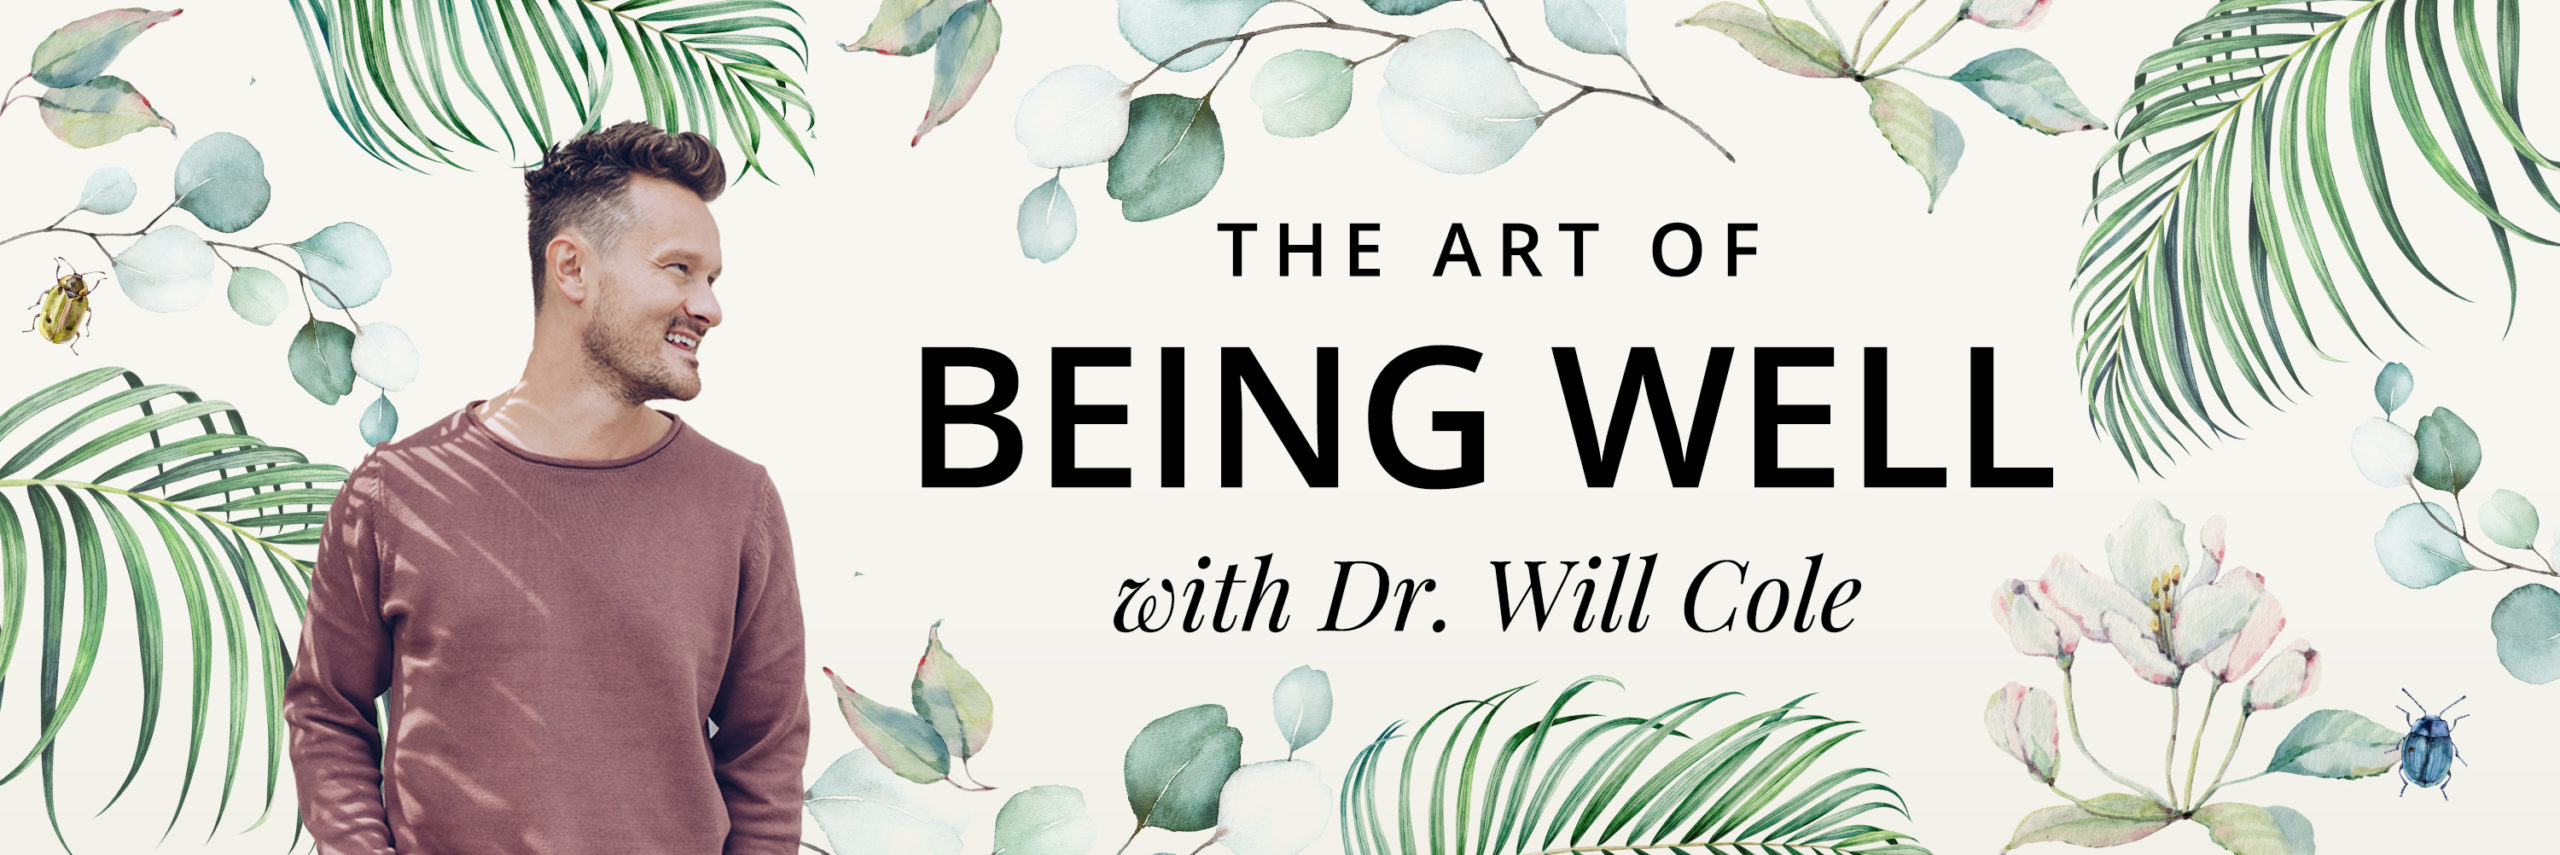 Premiering January 14th! Dr. Will Cole